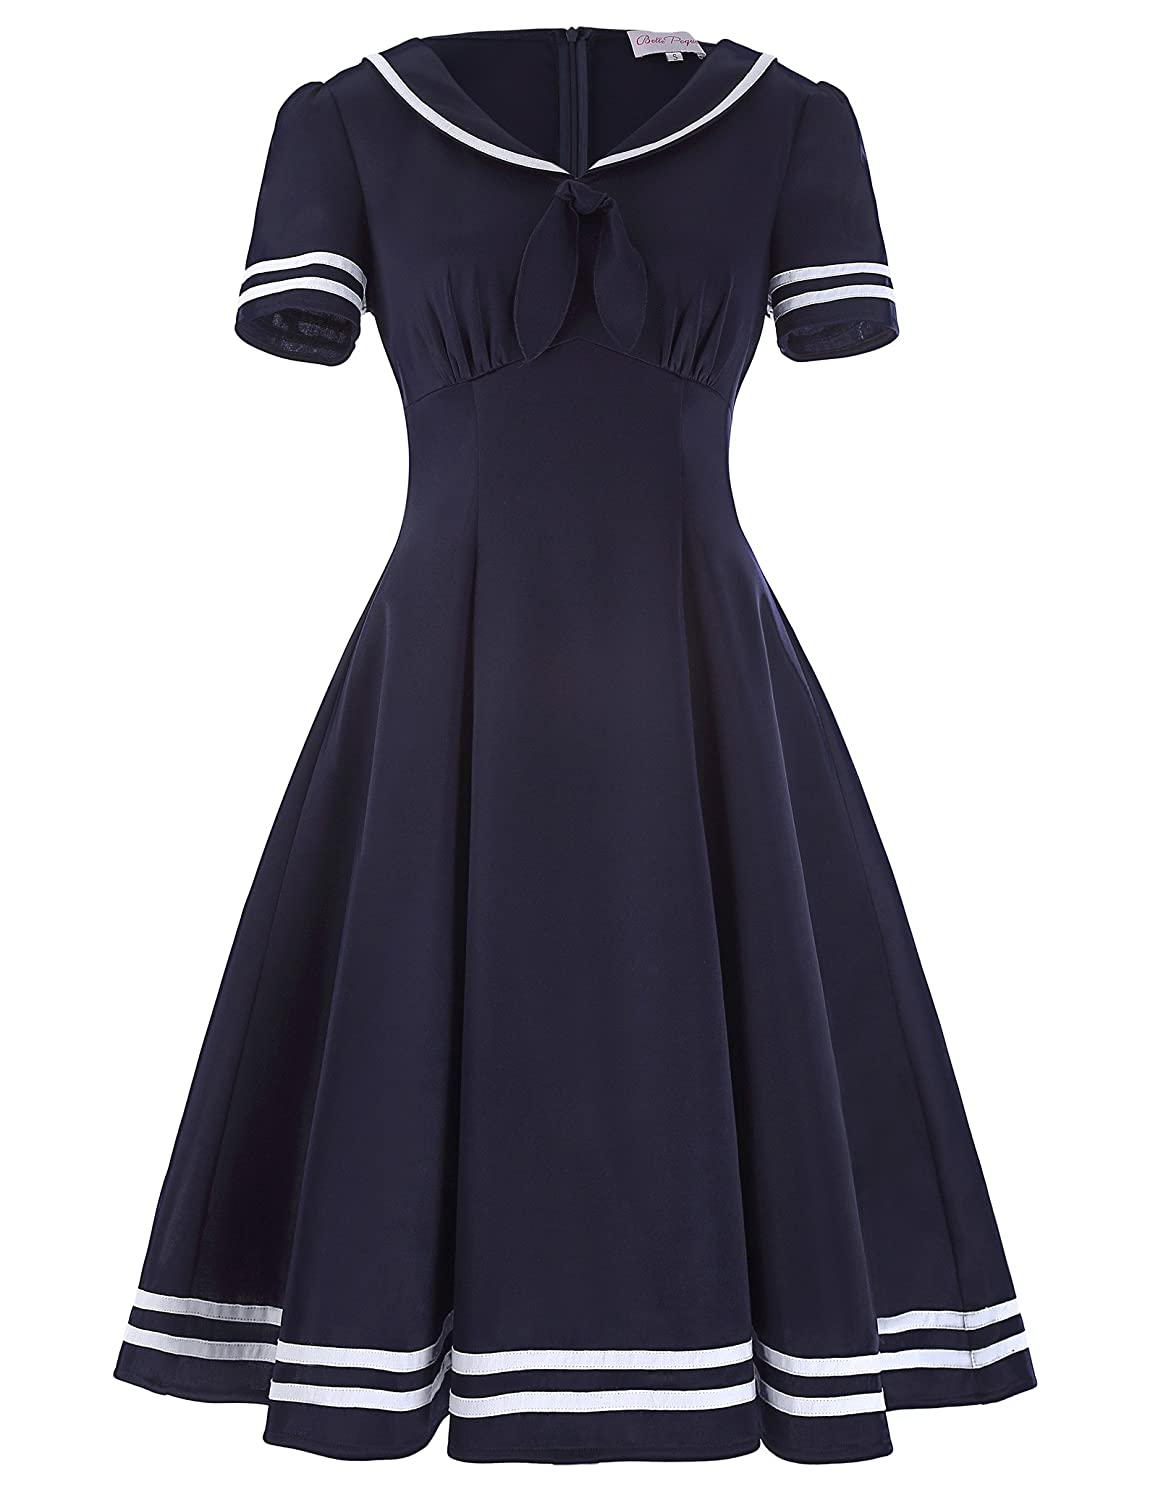 Agent Peggy Carter Costume, Dress, Hats Belle Poque Womens Retro Sailor Dress Short Sleeve Cocktail Party Swing Dress $29.99 AT vintagedancer.com